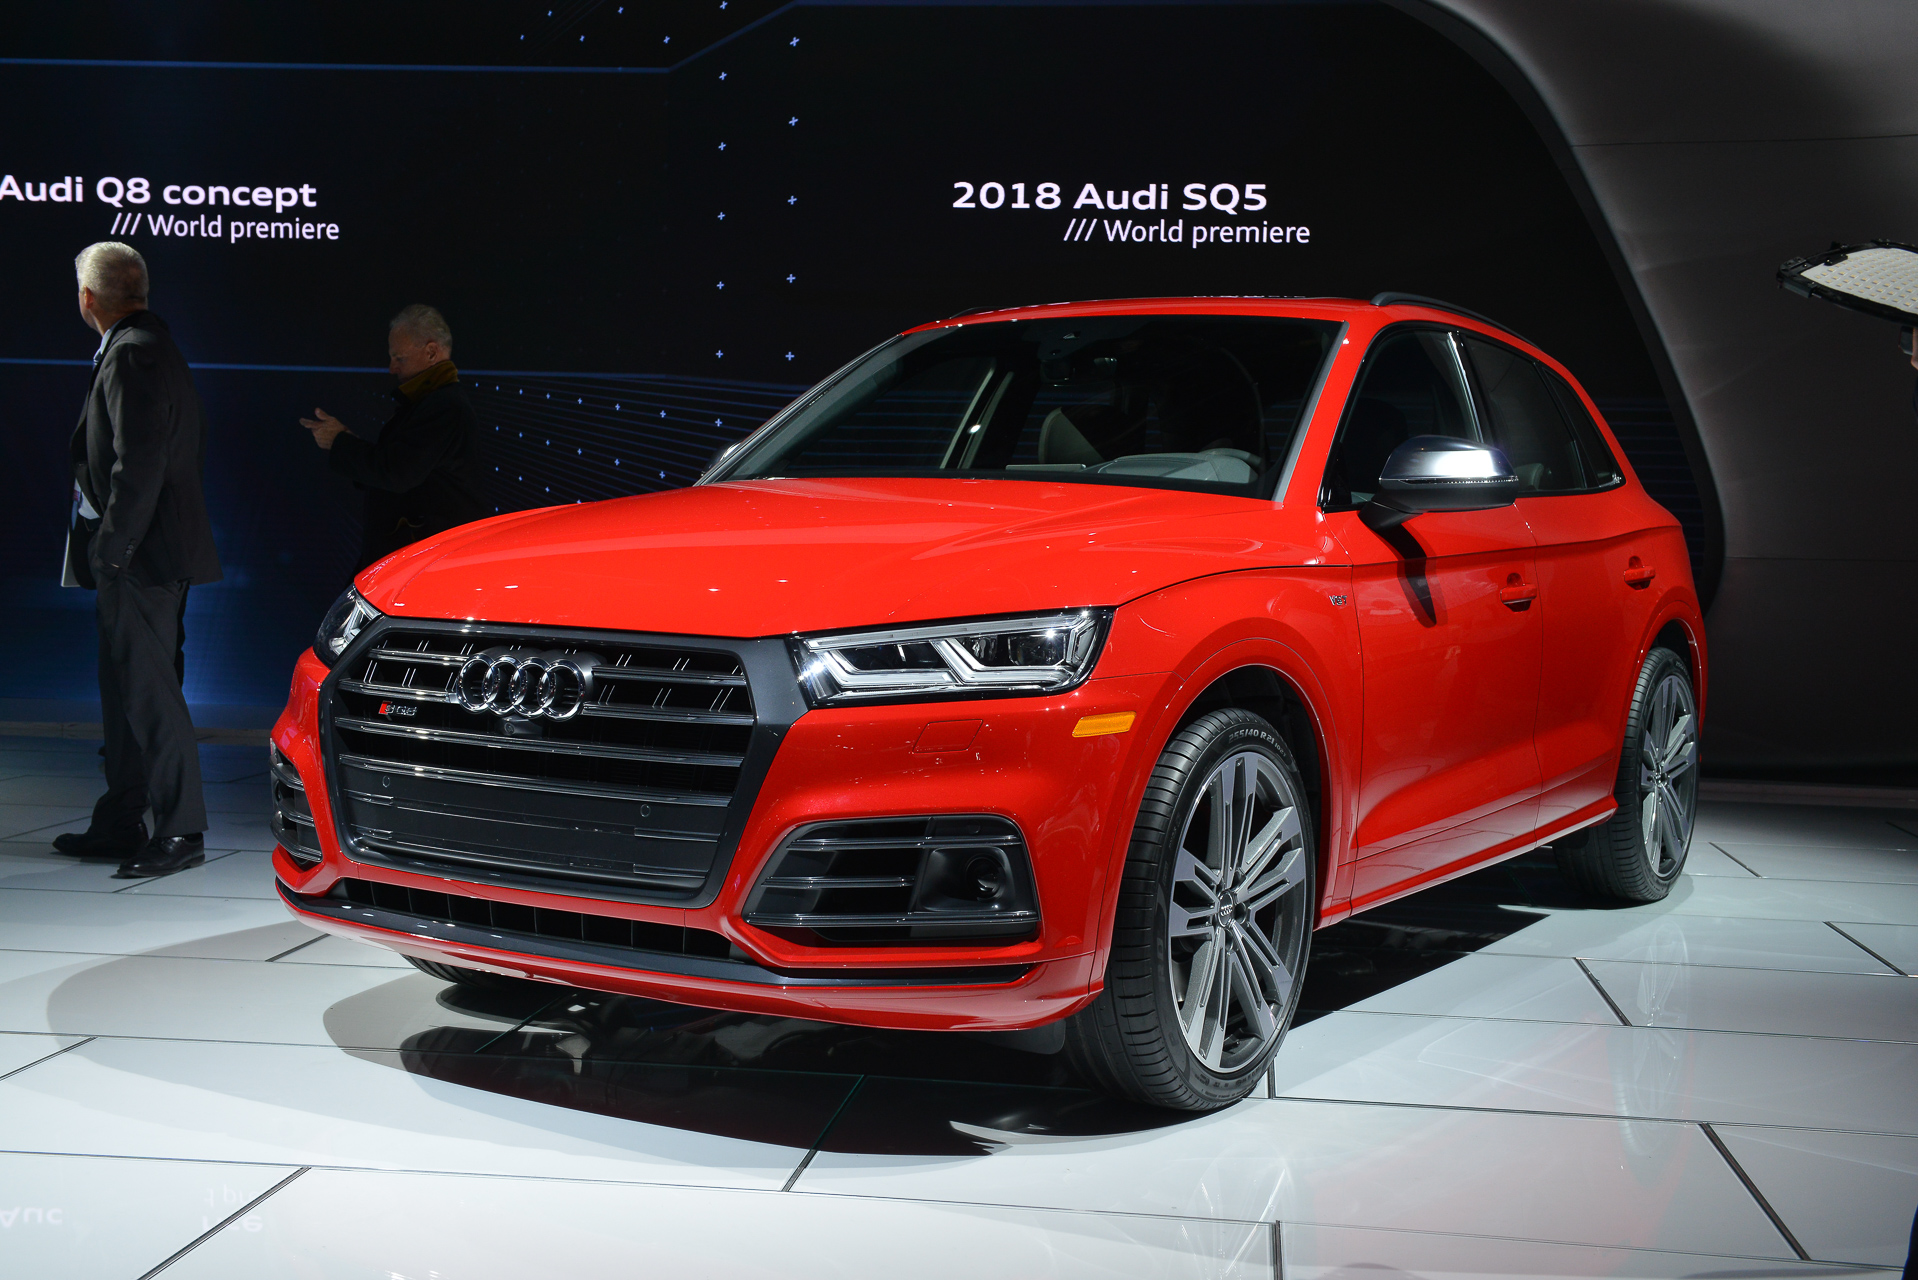 2018 Audi SQ5 debuts with 354 hp and 369 lb-ft